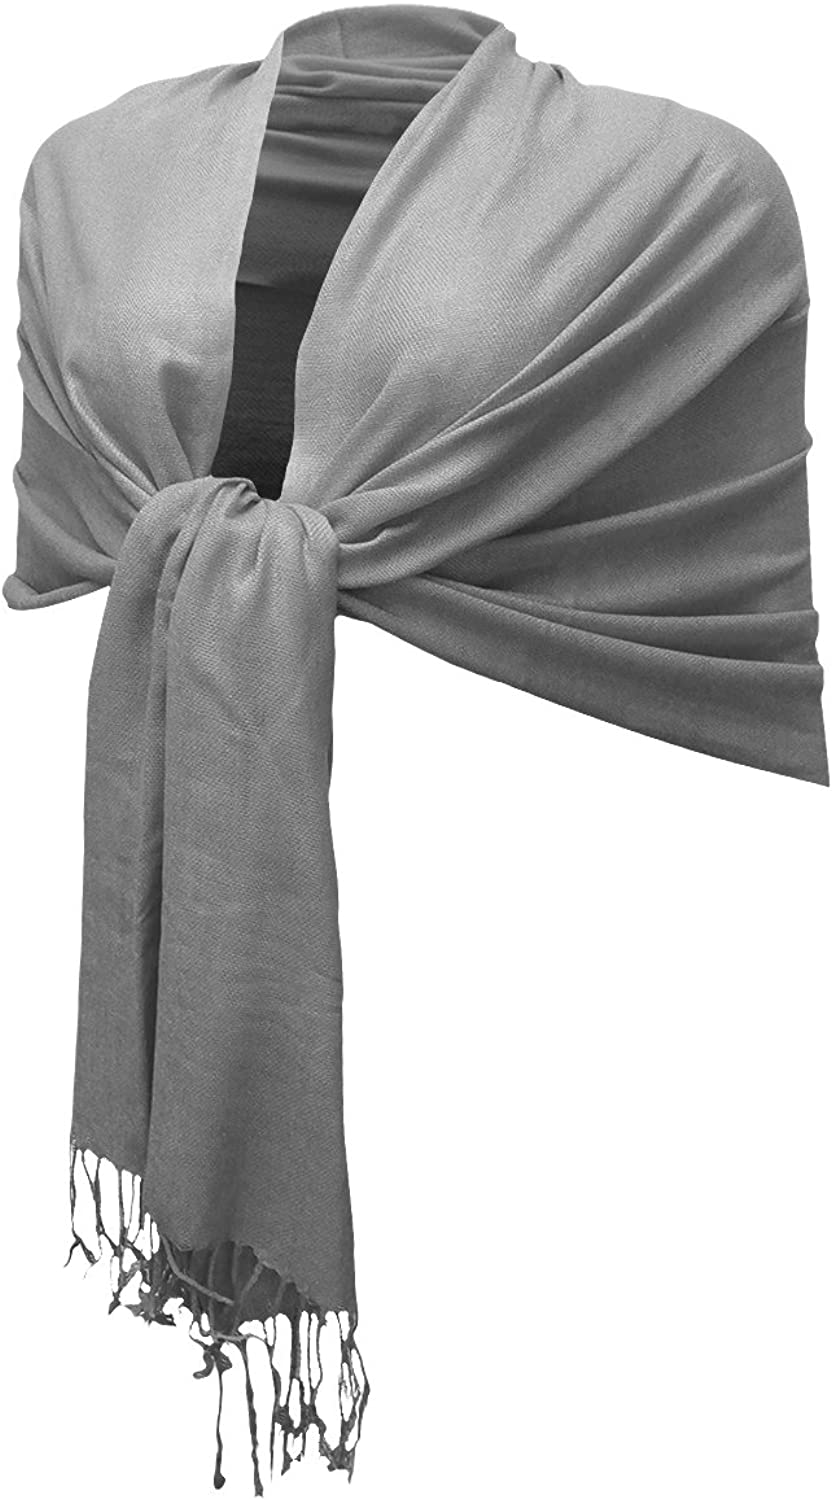 Enimay Women's Silky Persian Pashmina Scarf Large Soft Solid Shawl Wrap Stole